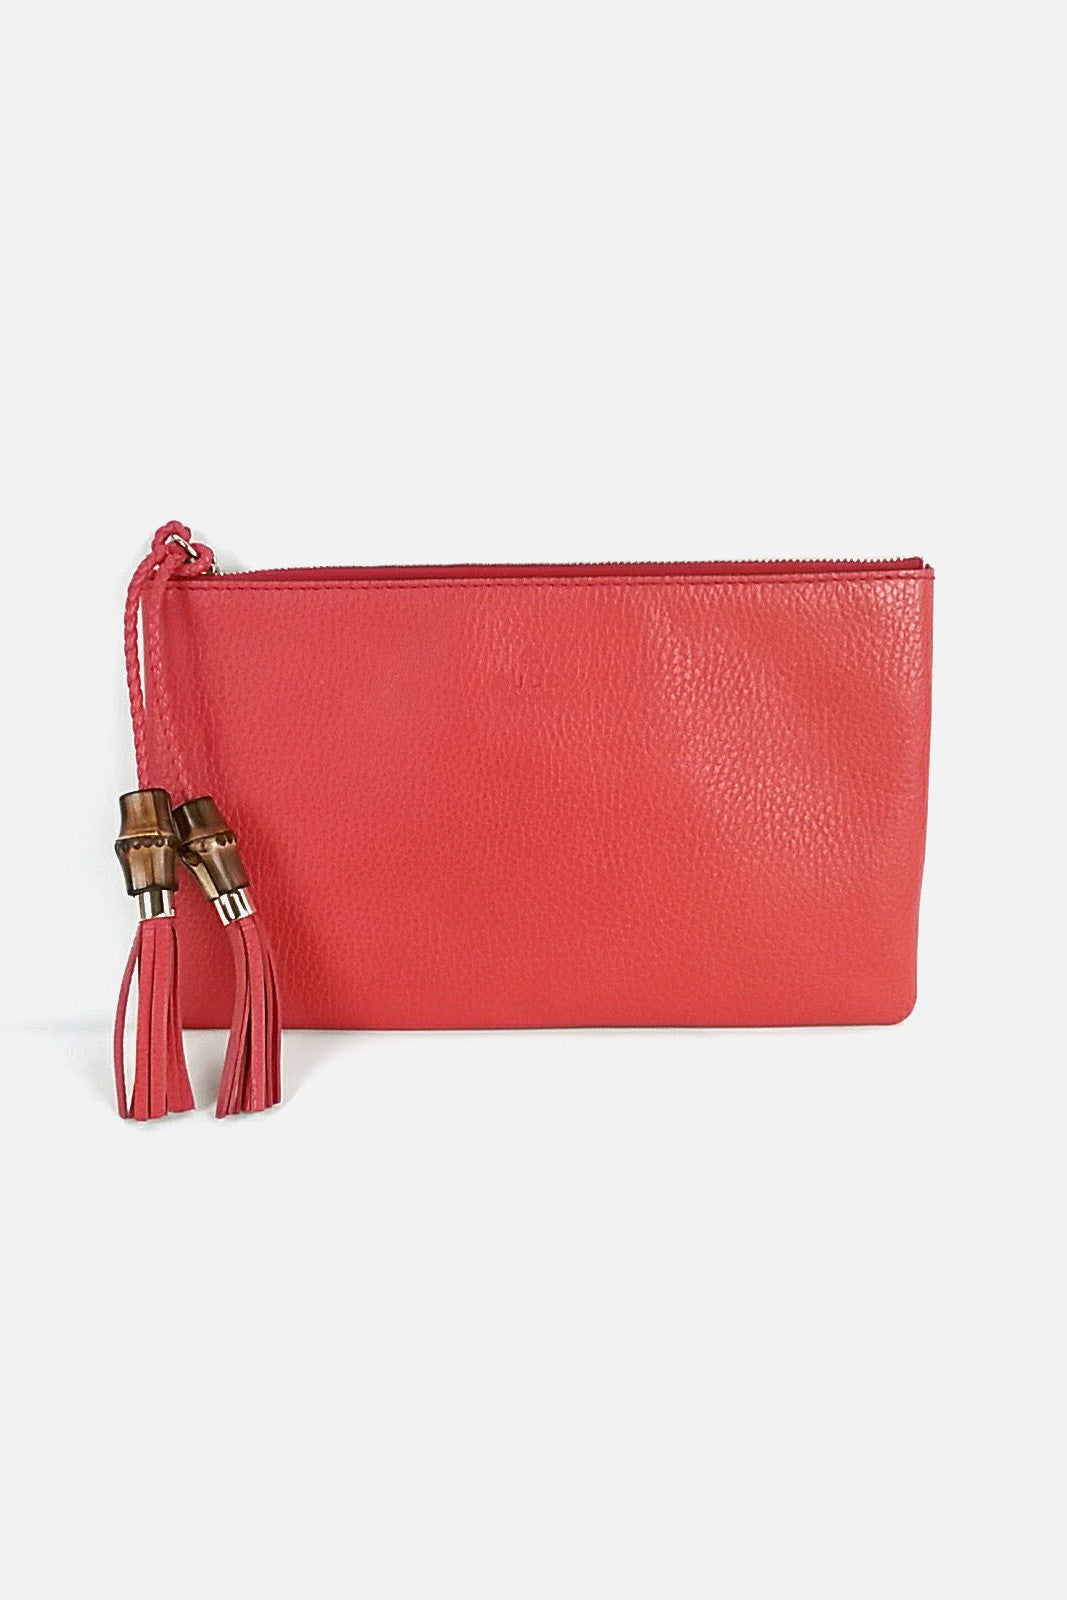 Sanguine Leather Clutch w/ Bamboo and Tassle Detail